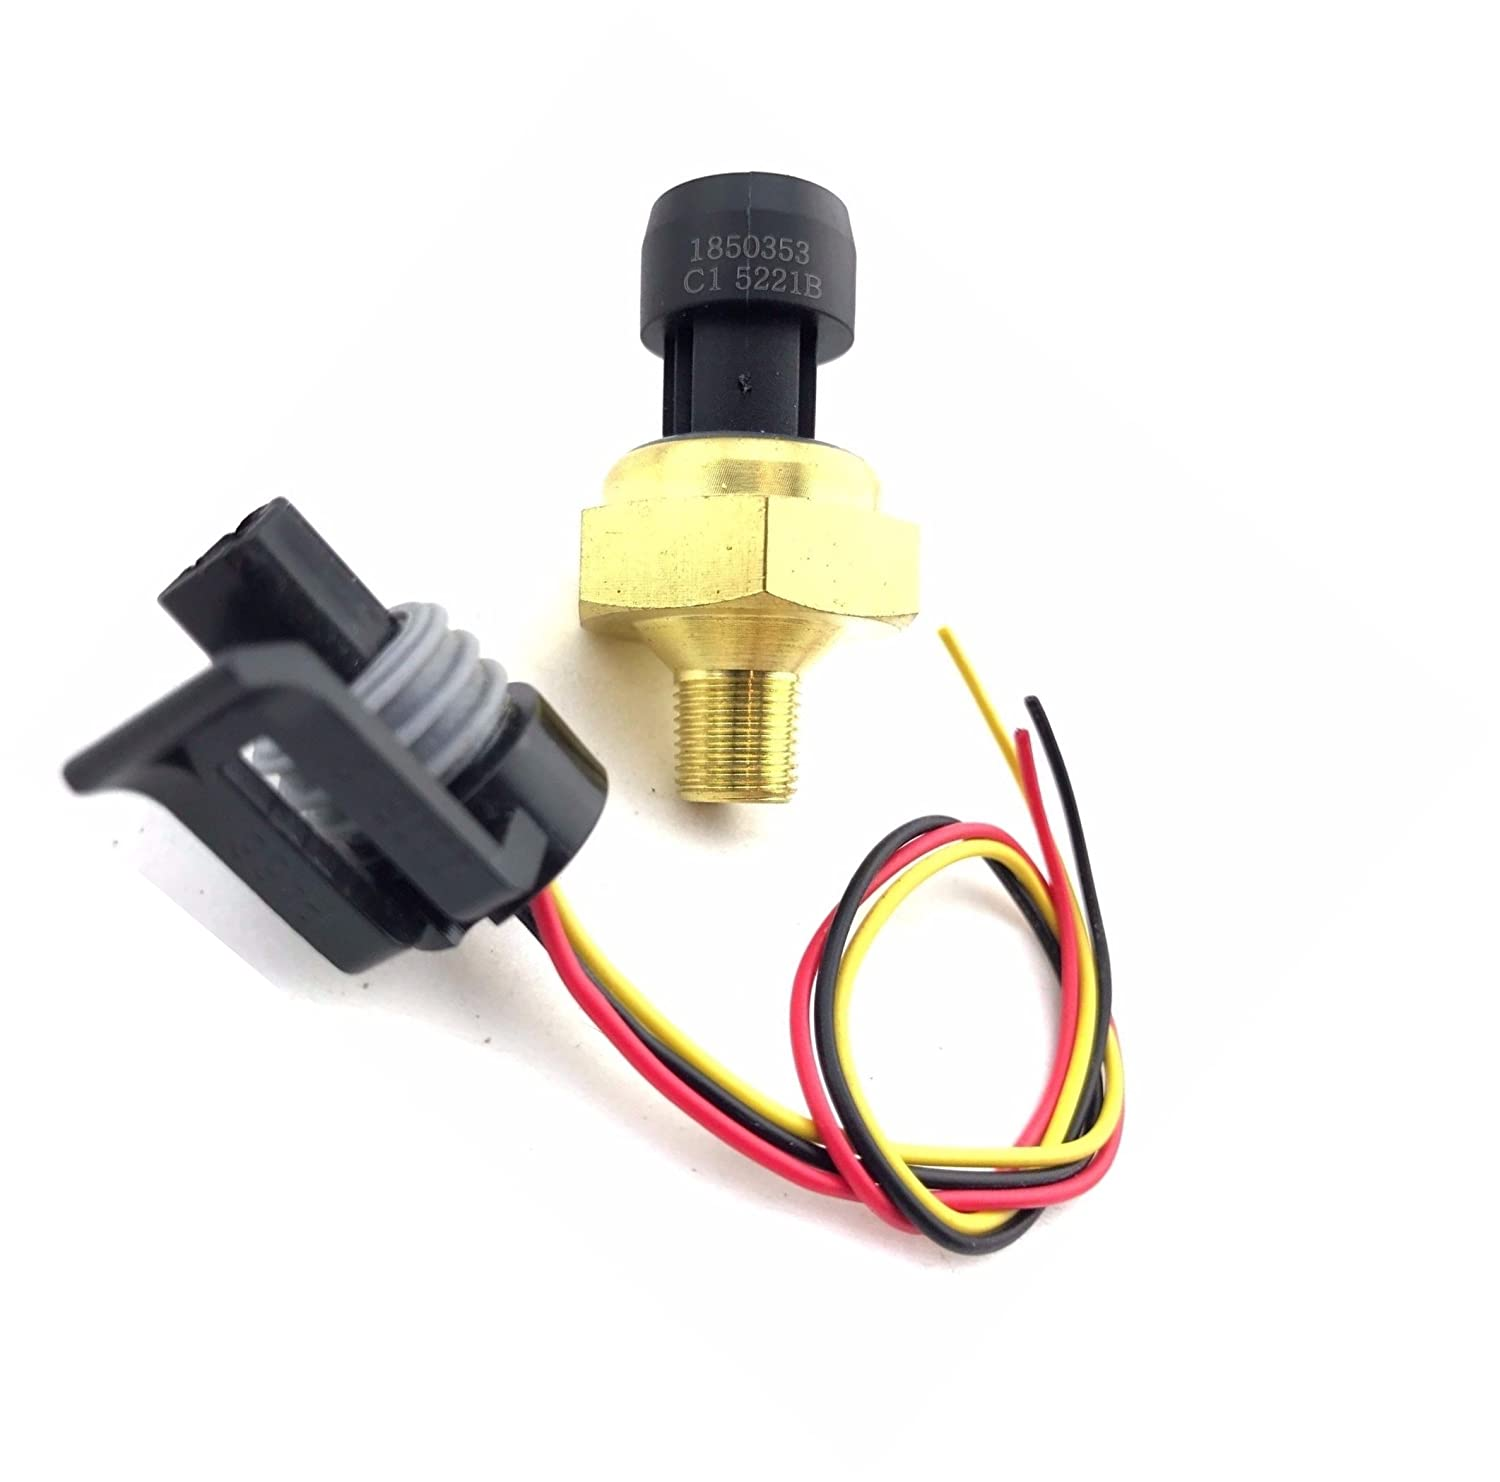 EBP EGR Exhaust Back Pressure Sensor fits Ford Powerstroke 7.3L 6.0L 1997-2003 Replaces 1850353C1 4C3Z-9J460-A DPFE-3 Coil Glow Plug Pigtail Included Top Quality Brand New fengtai